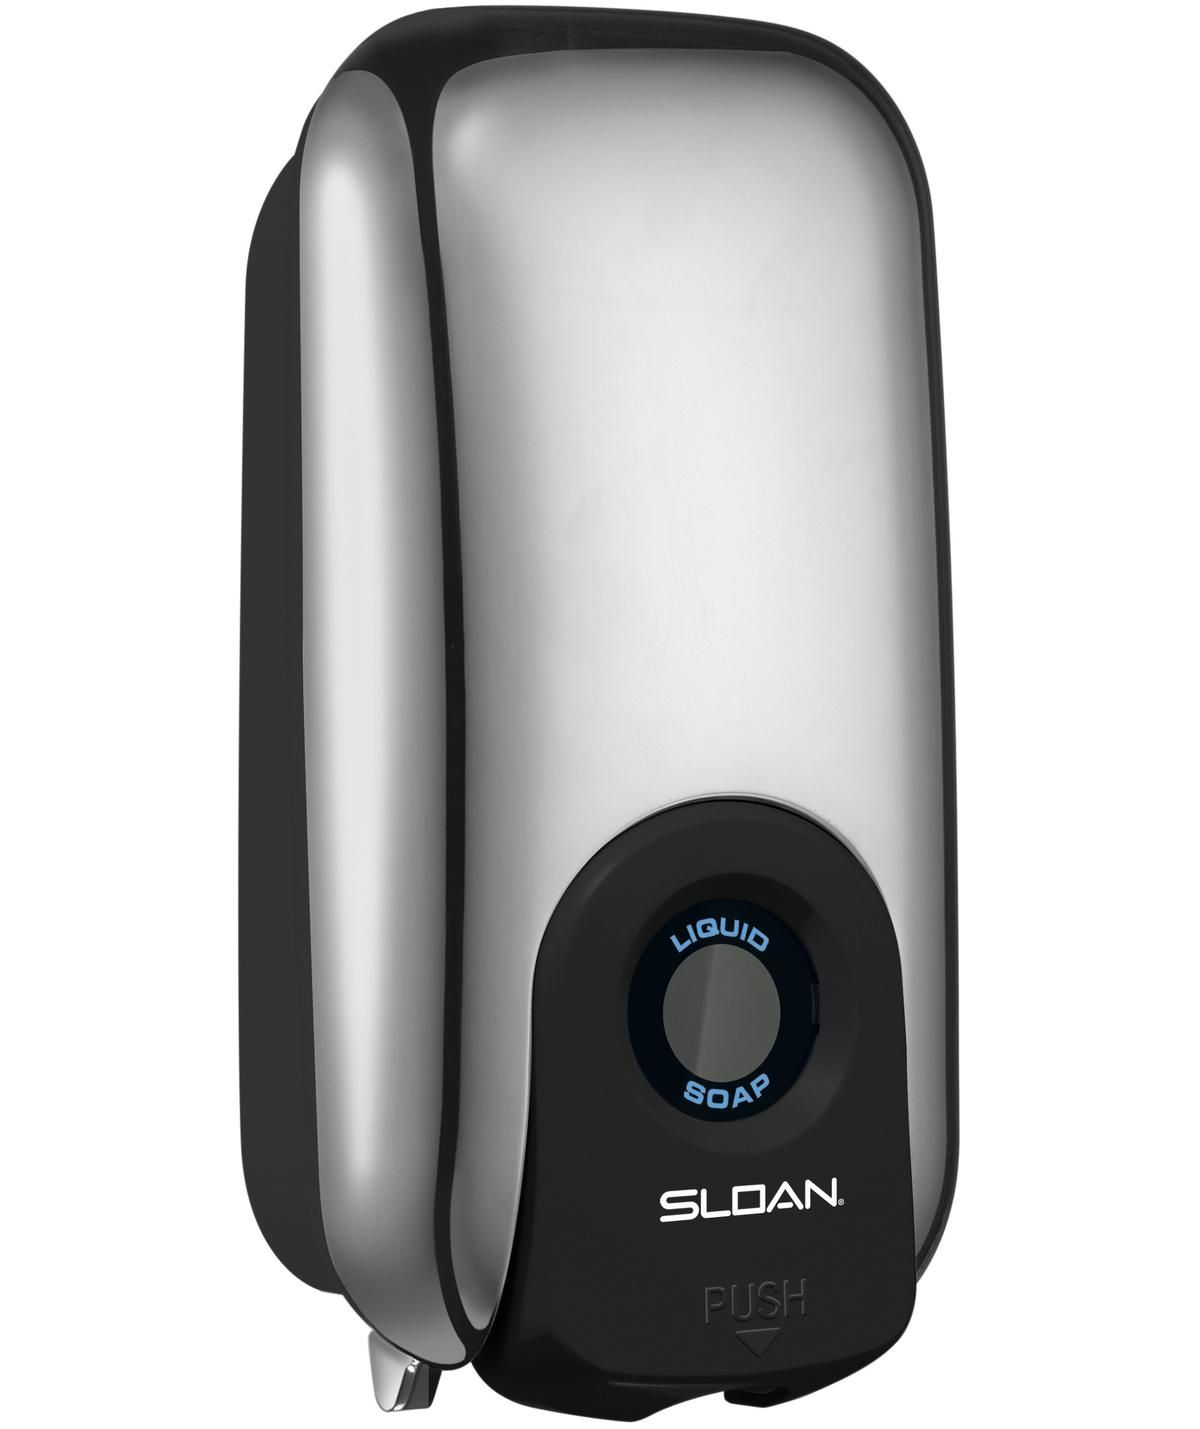 Automatic Soap Dispensers And Hand Dryers Sloan